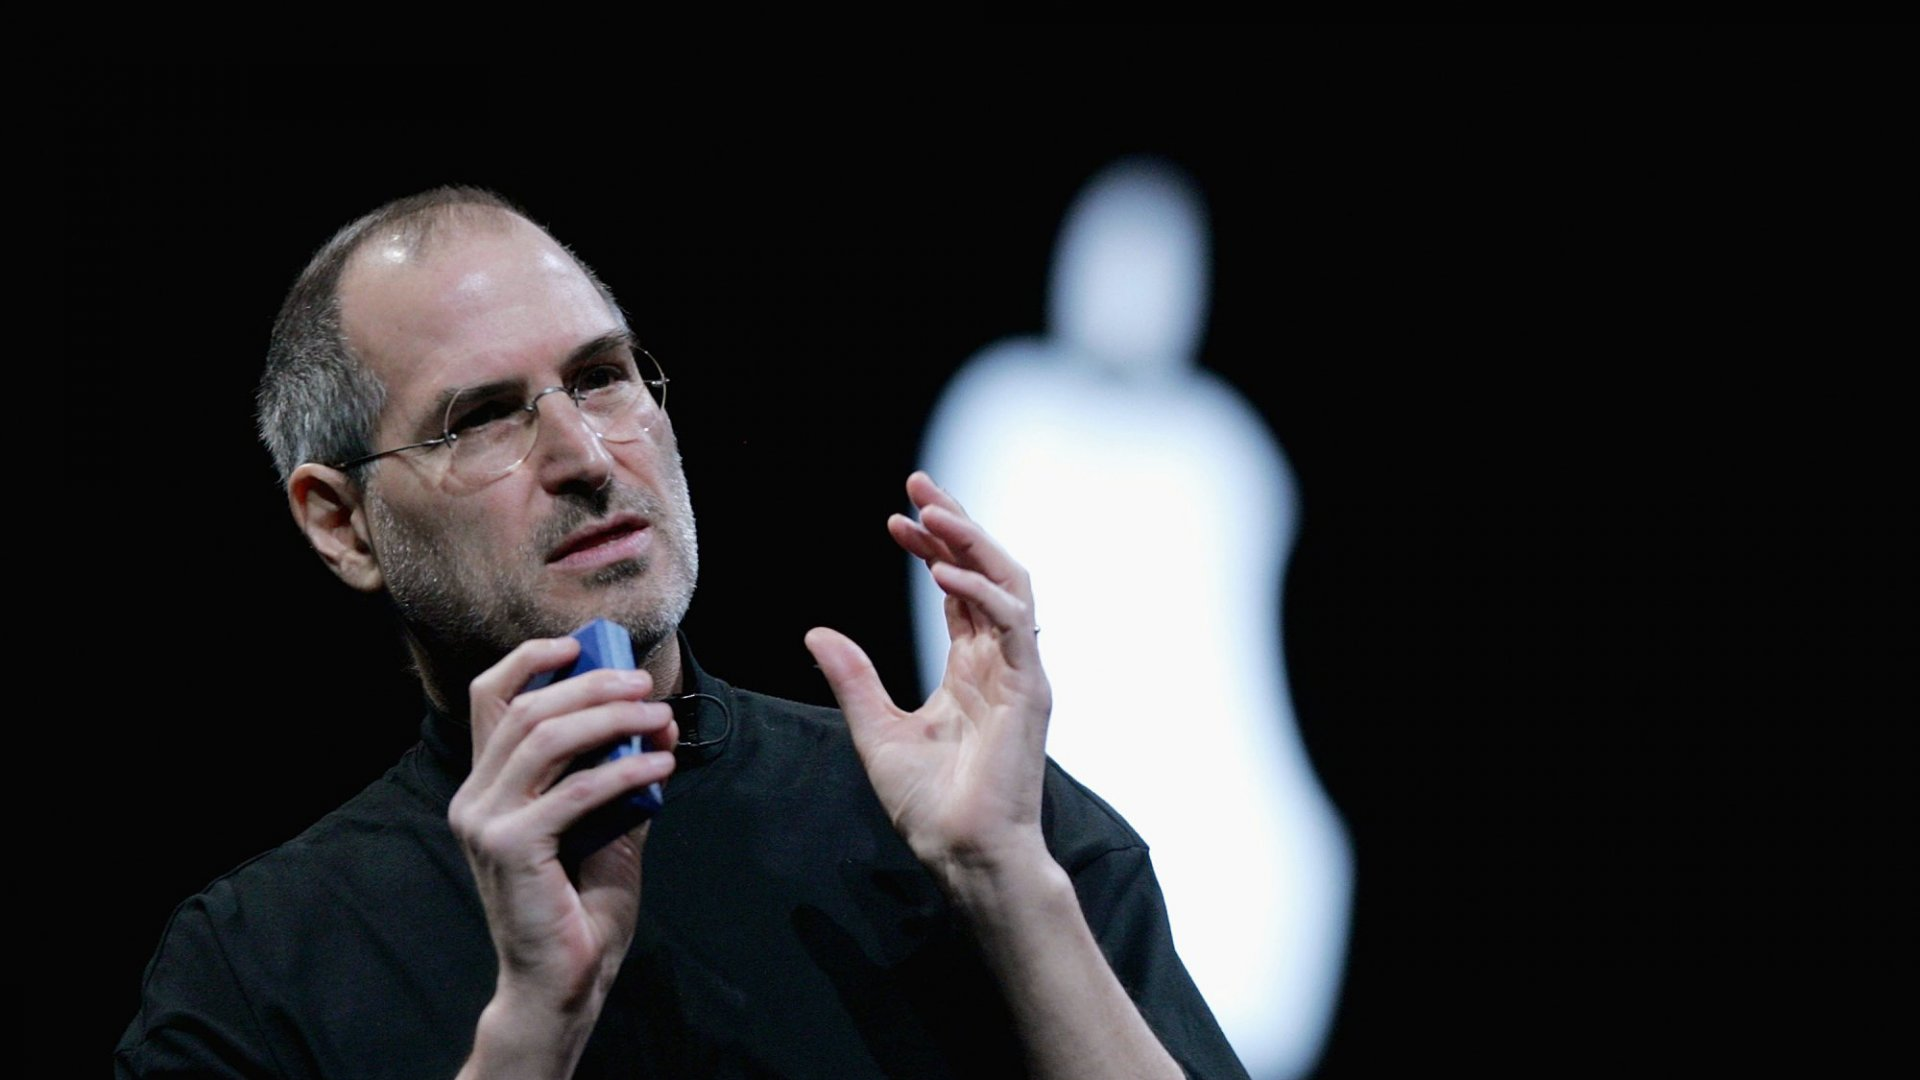 This Productivity Hack From Steve Jobs Will Boost Your Motivation and Clarity